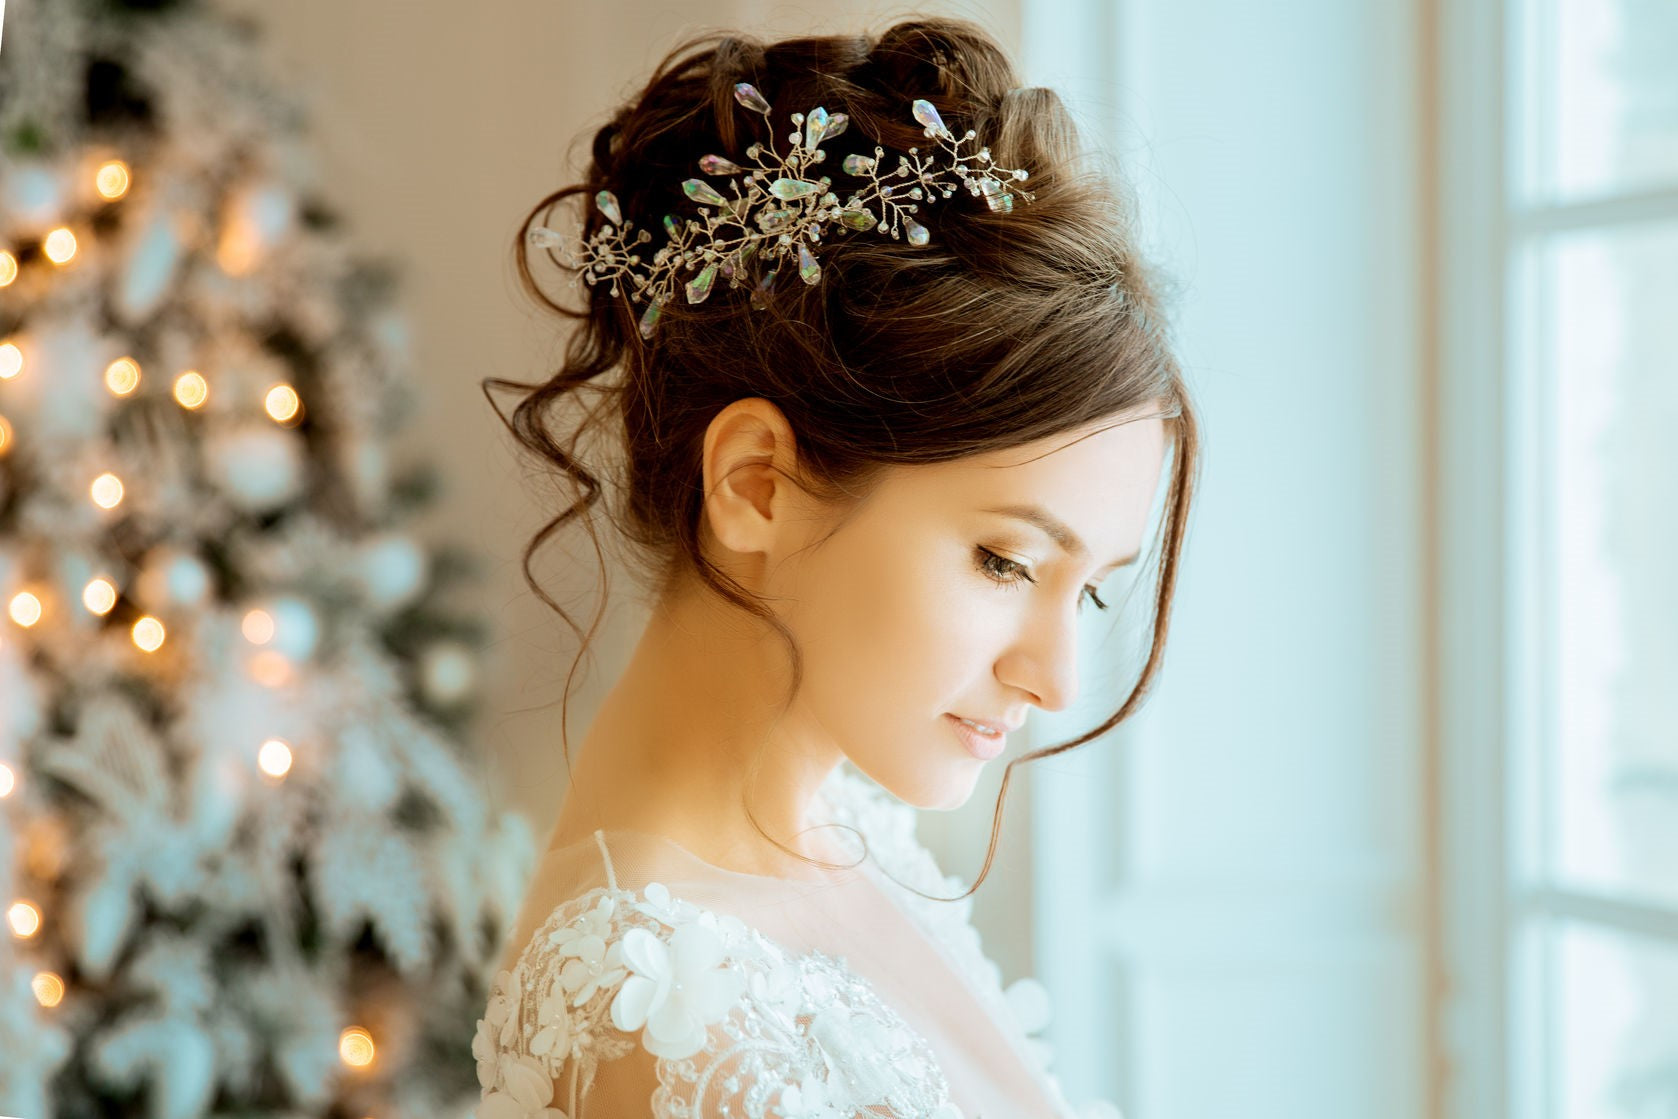 Is Hair Extensions Important to Wedding?